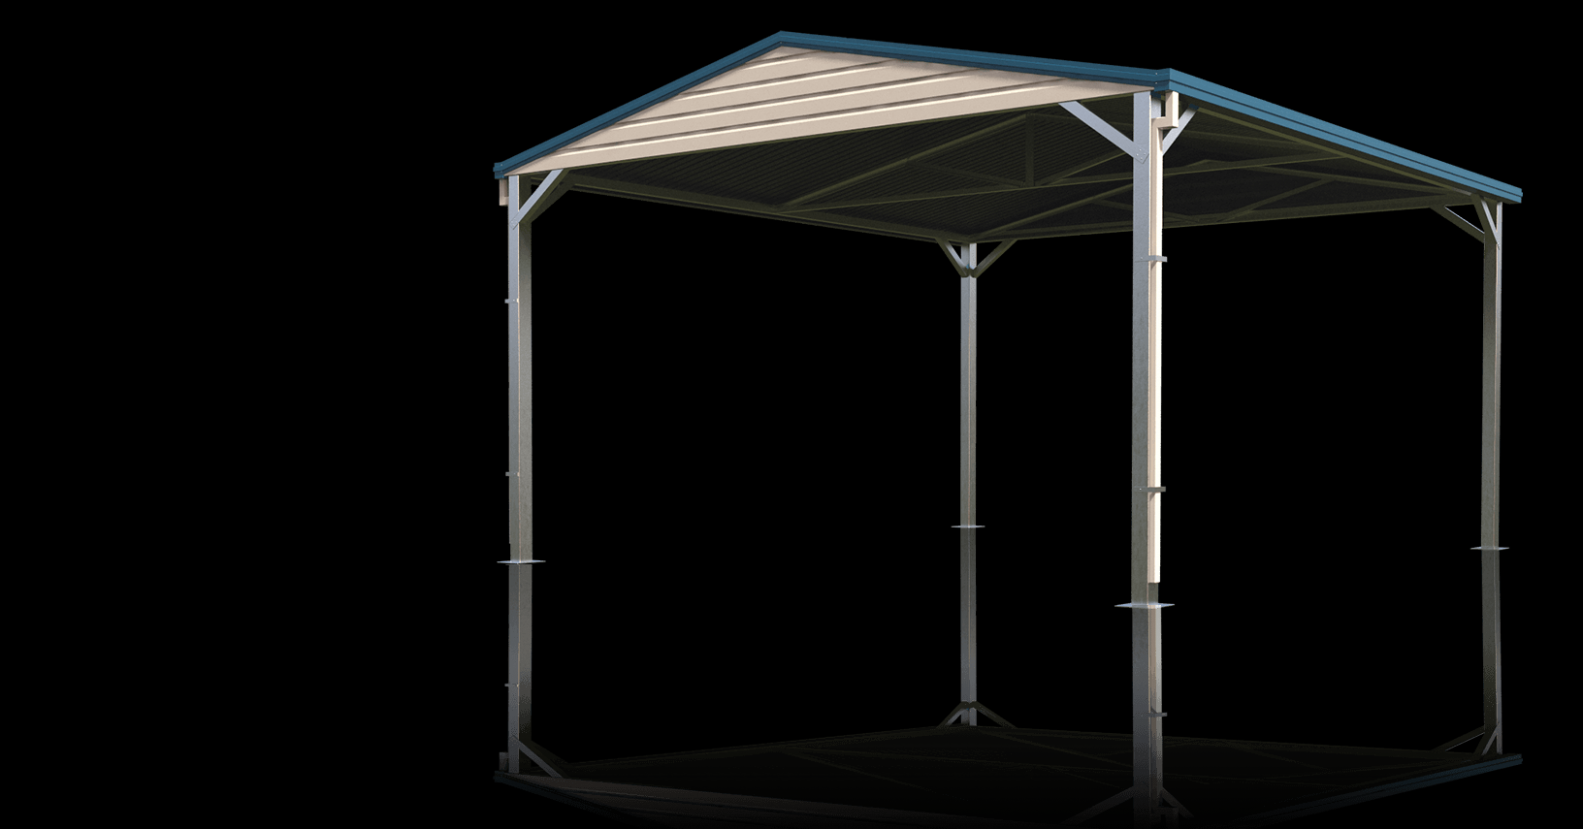 Sheds And Garages Guaranteed By Titan Garages & Sheds Wooden Carport Kits Australia